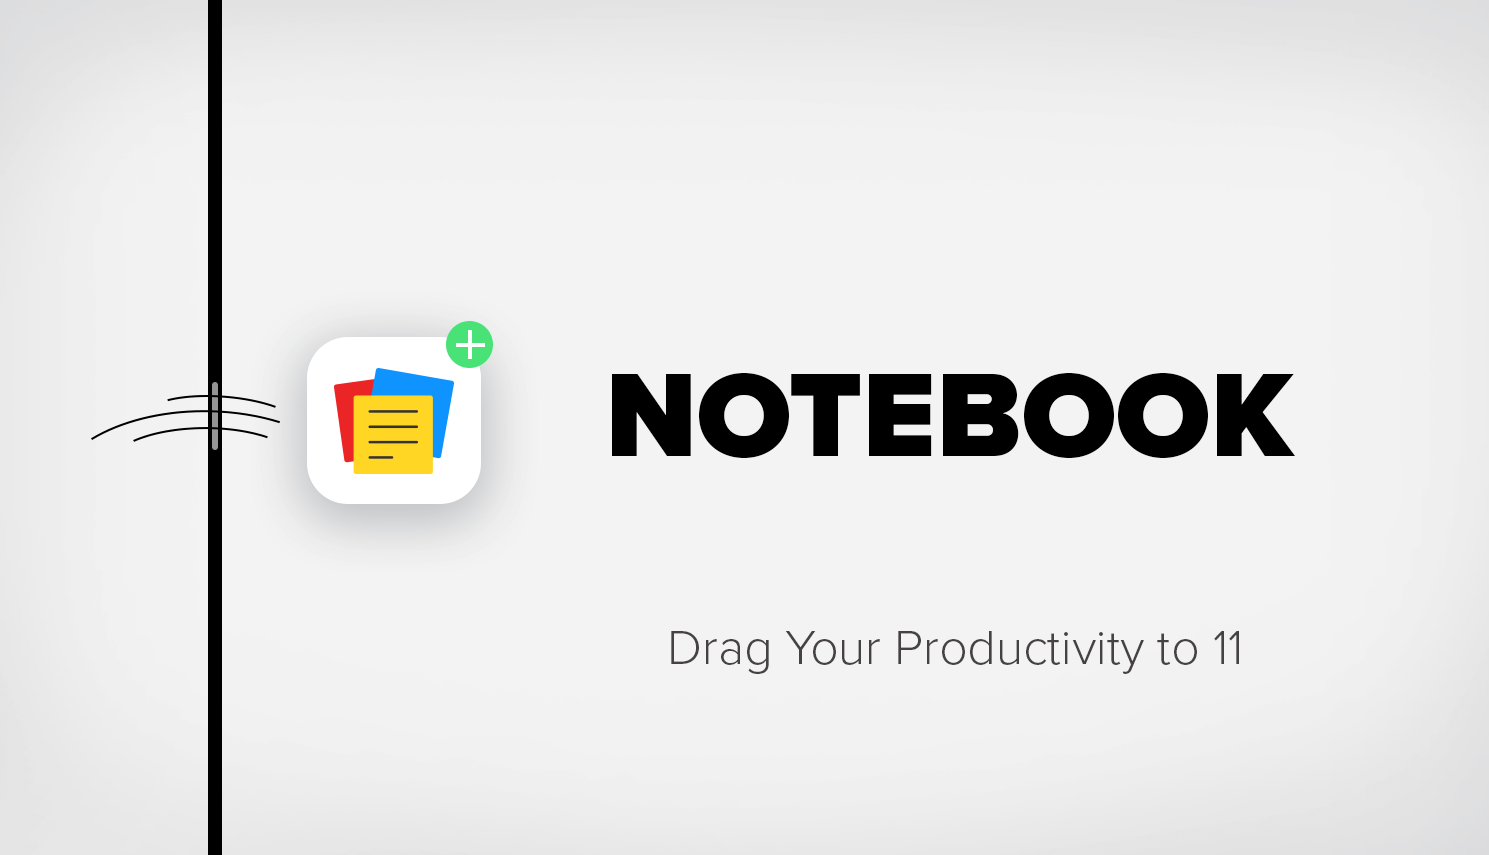 Drag Your Productivity to 11 with Notebook for iPad Pro and More